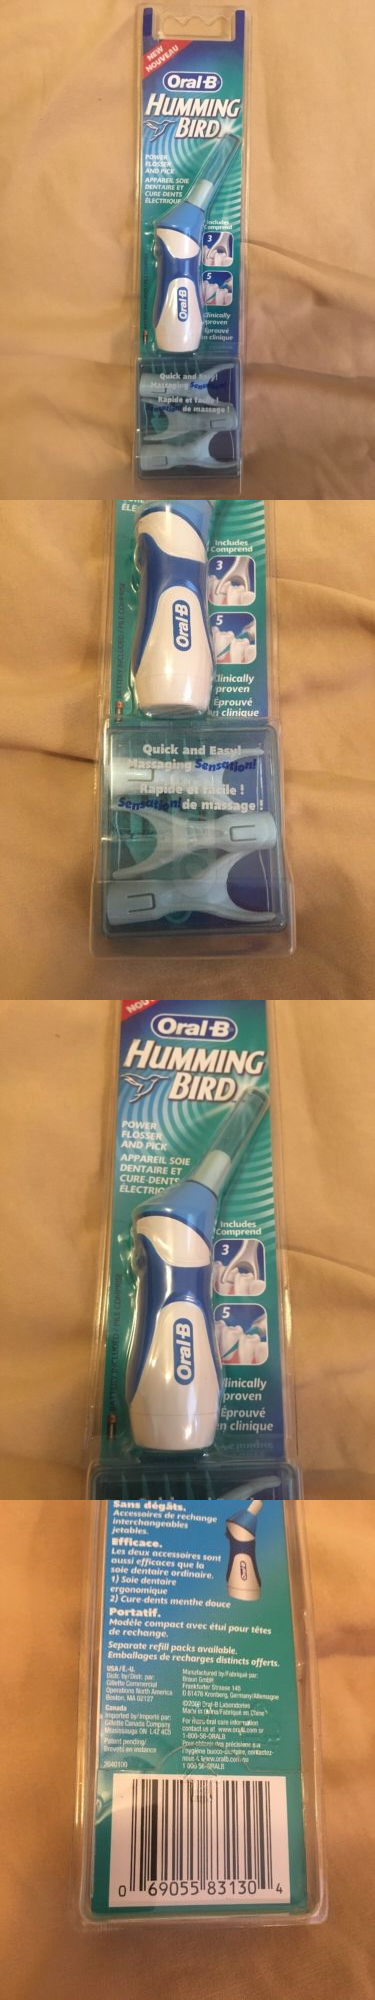 Oral b hummingbird electric flosser for couples